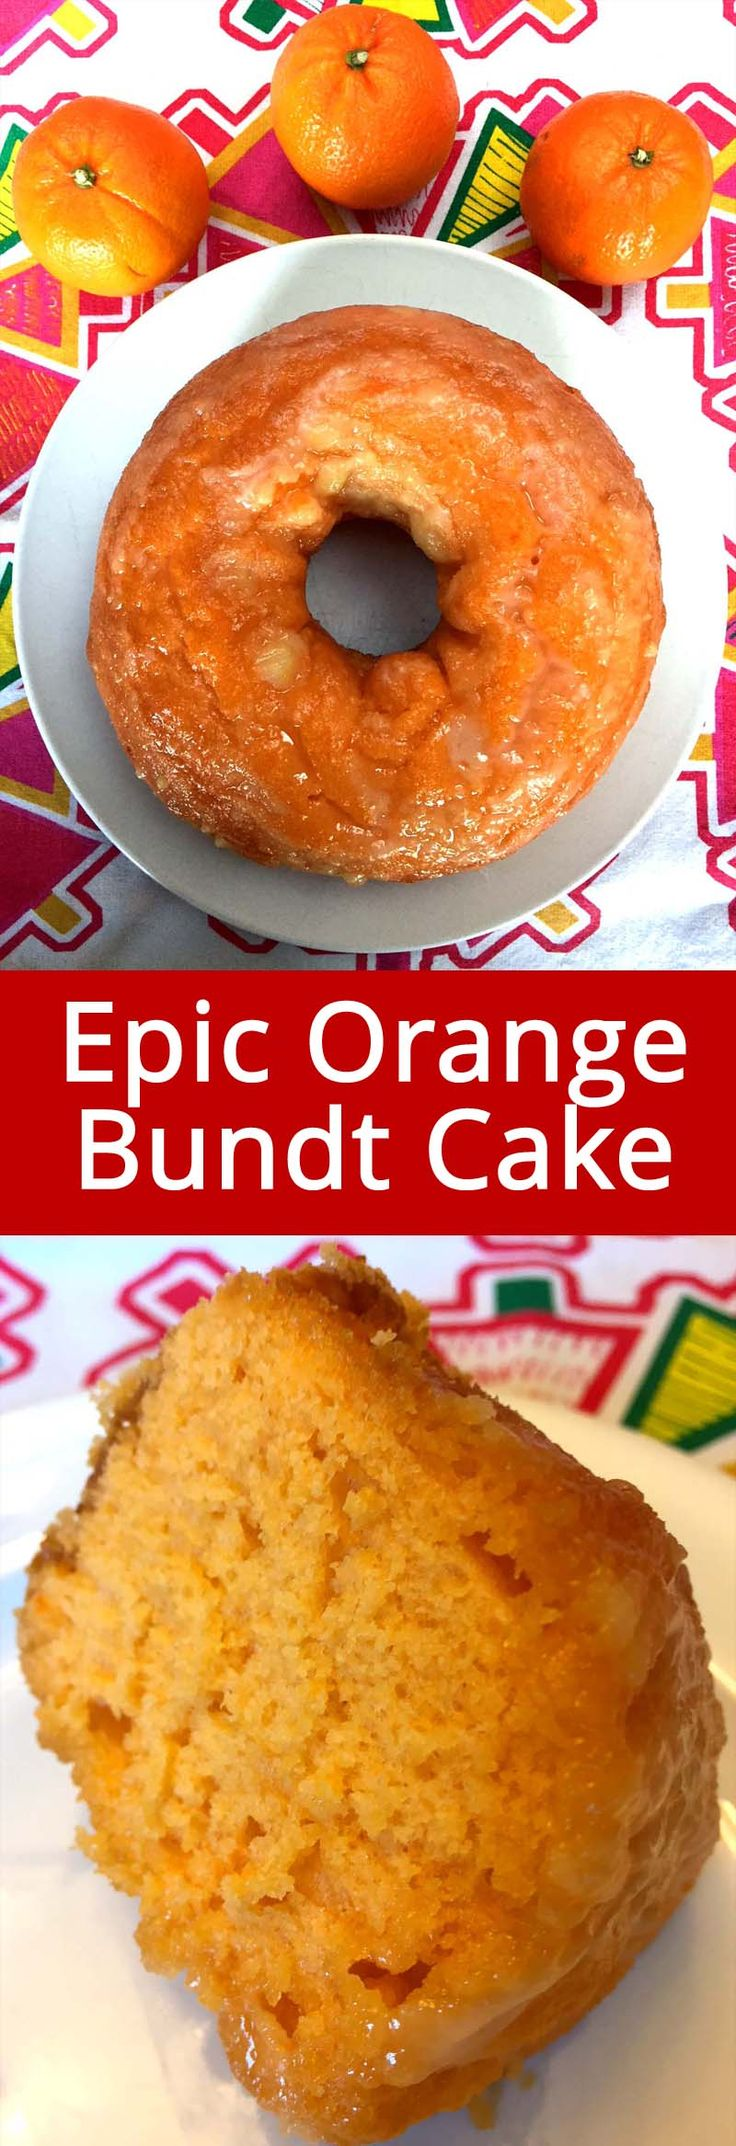 This easy orange bundt cake recipe is amazing! Made totally from scratch, no cake mix and really easy to make! So moist and delicious, and you can taste the orange flavor in every bite!